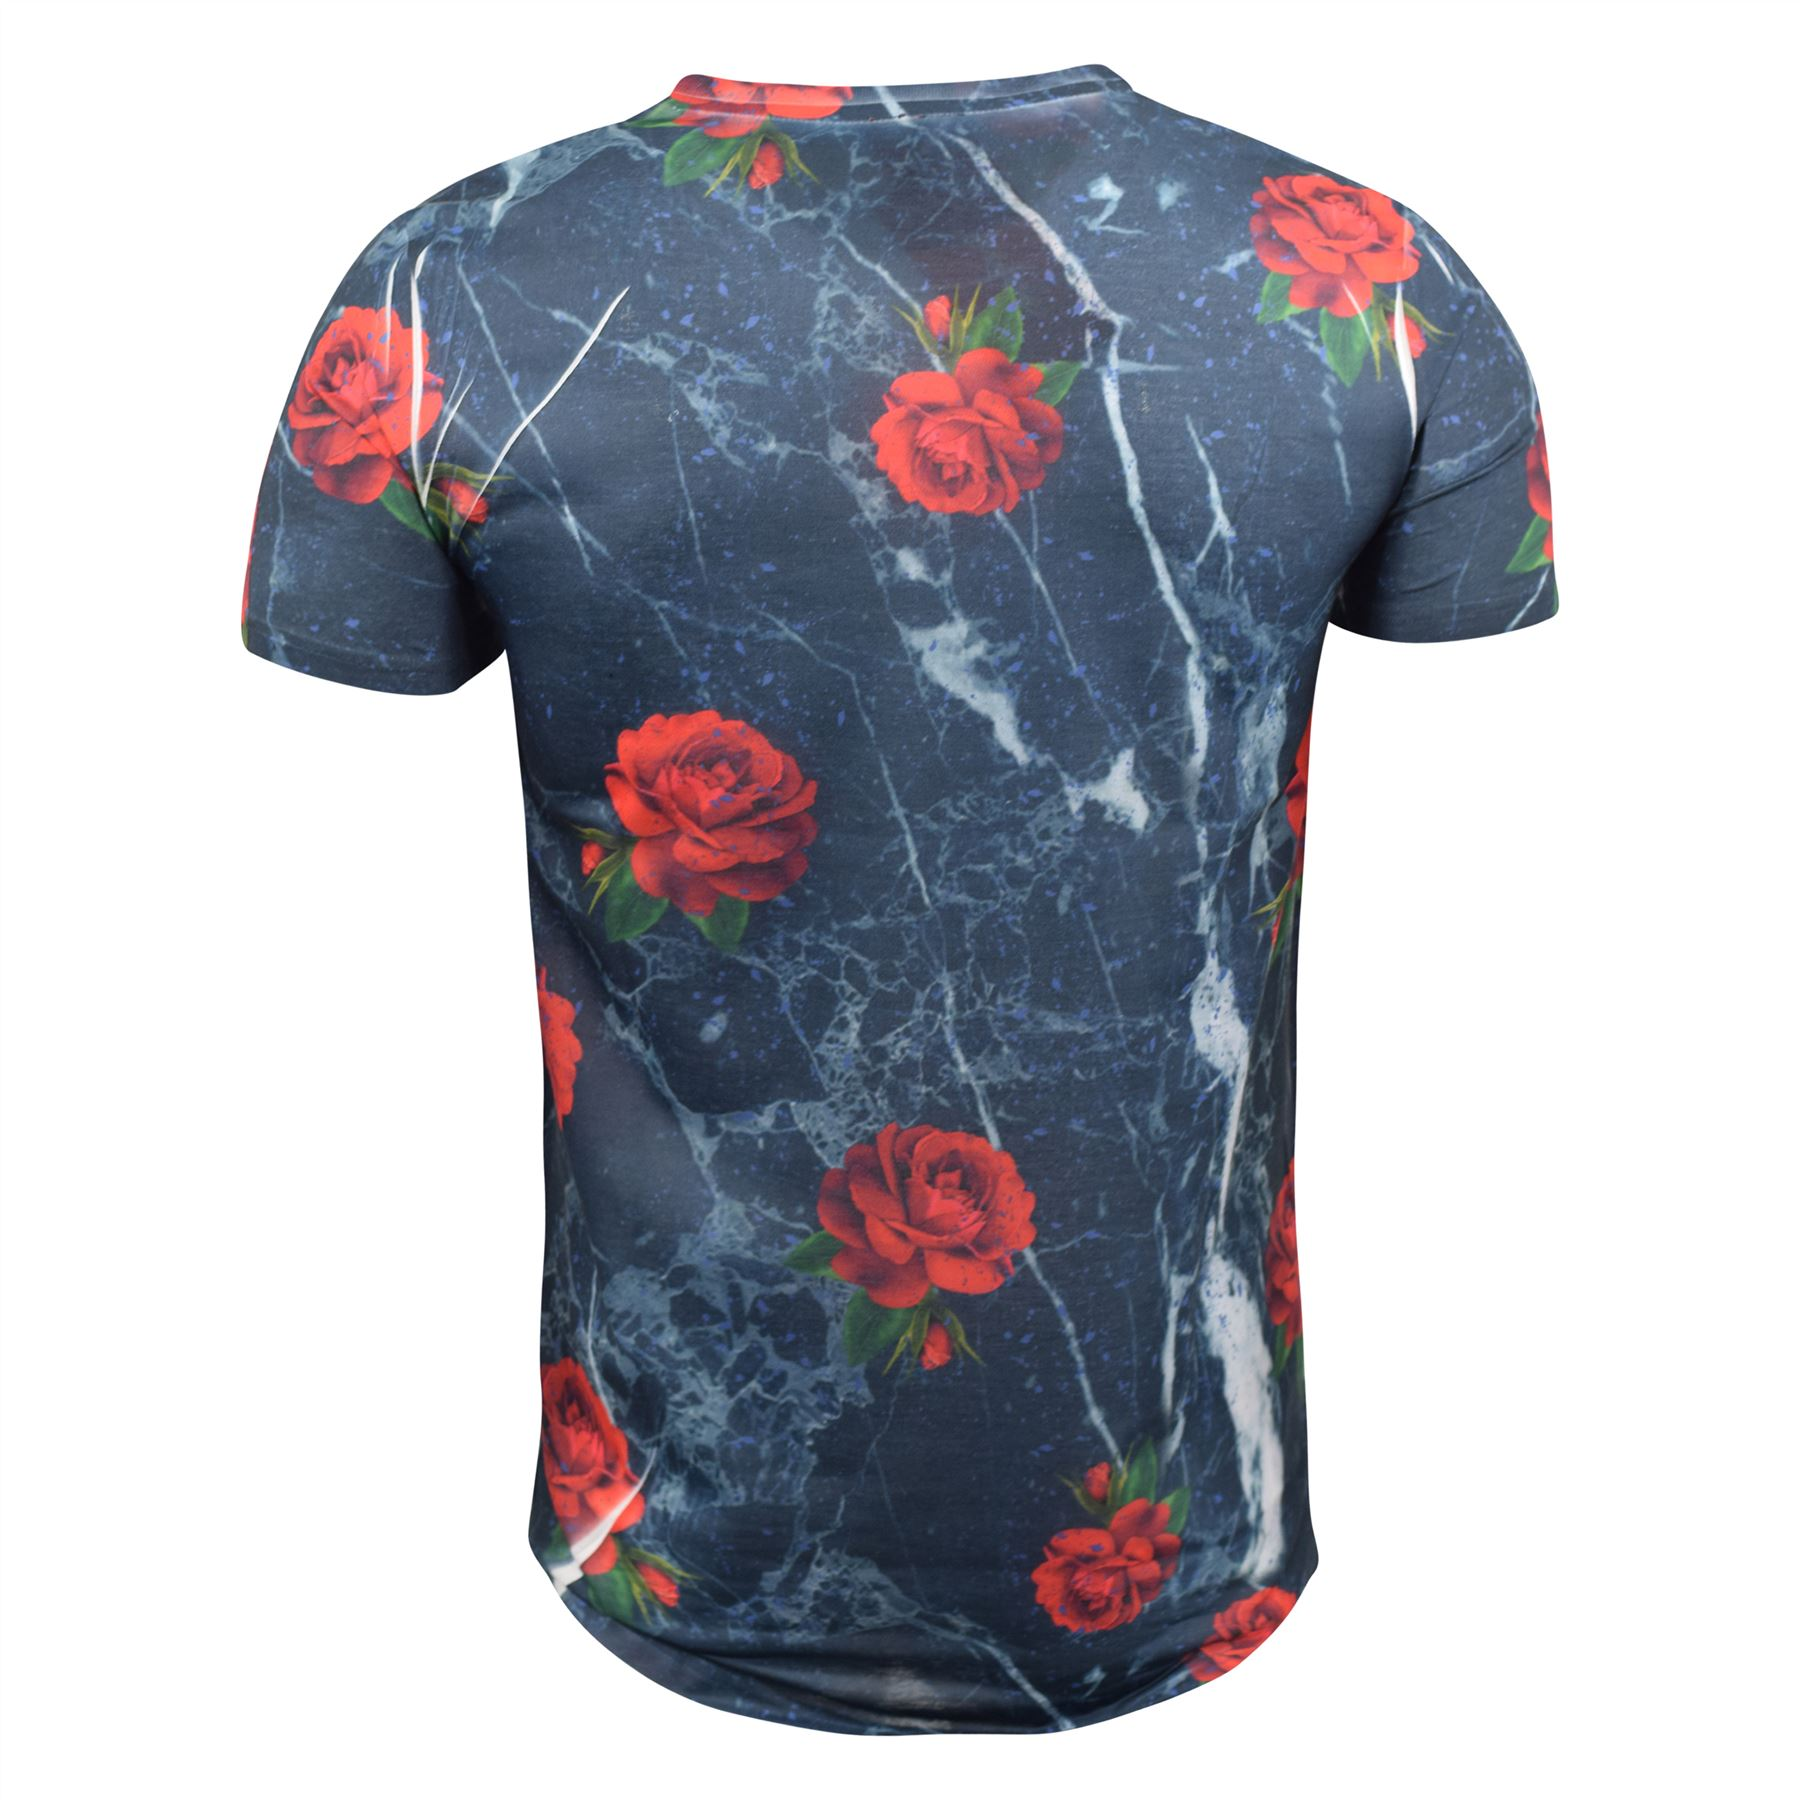 Mens-T-Shirt-Juice-Floral-Print-Flower-Crew-Neck-Tee-Top thumbnail 16